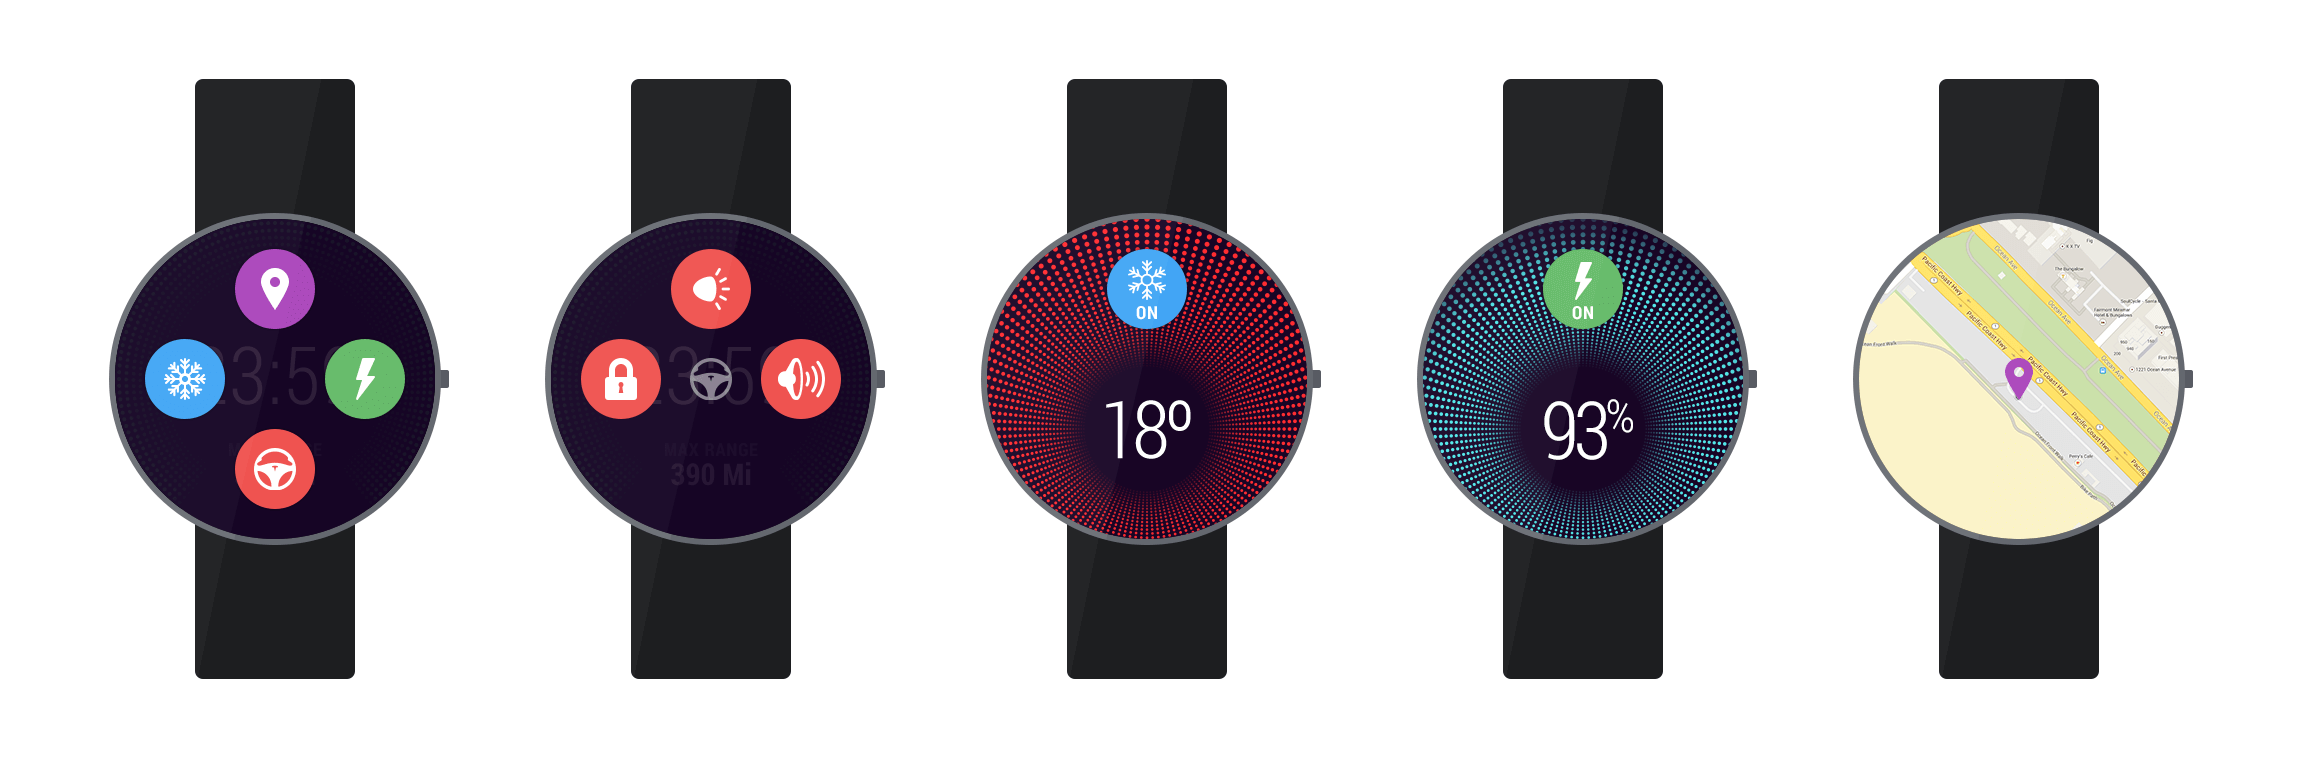 Apple_Watch_Android_Wear_Tesla_ELEKSlabs_4